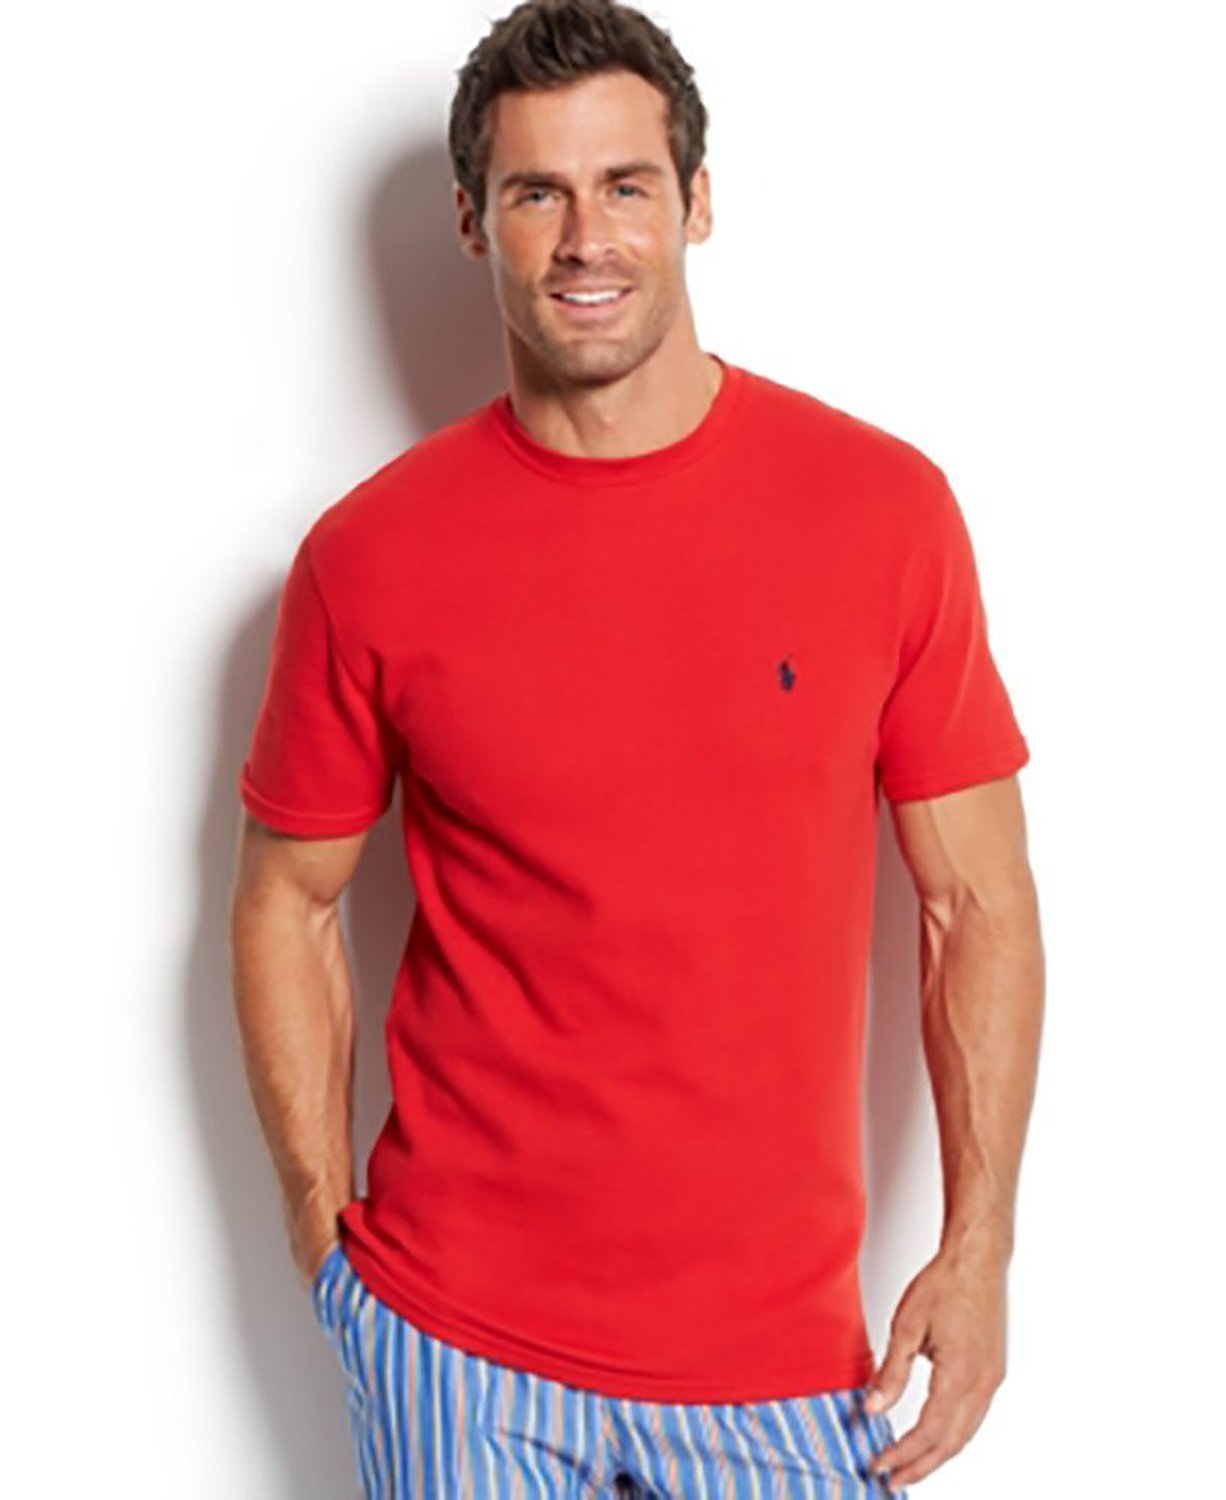 9408dc15 Get Quotations · Polo Ralph Lauren Waffle-Knit Thermal Crew-Neck T-Shirt  Red Large